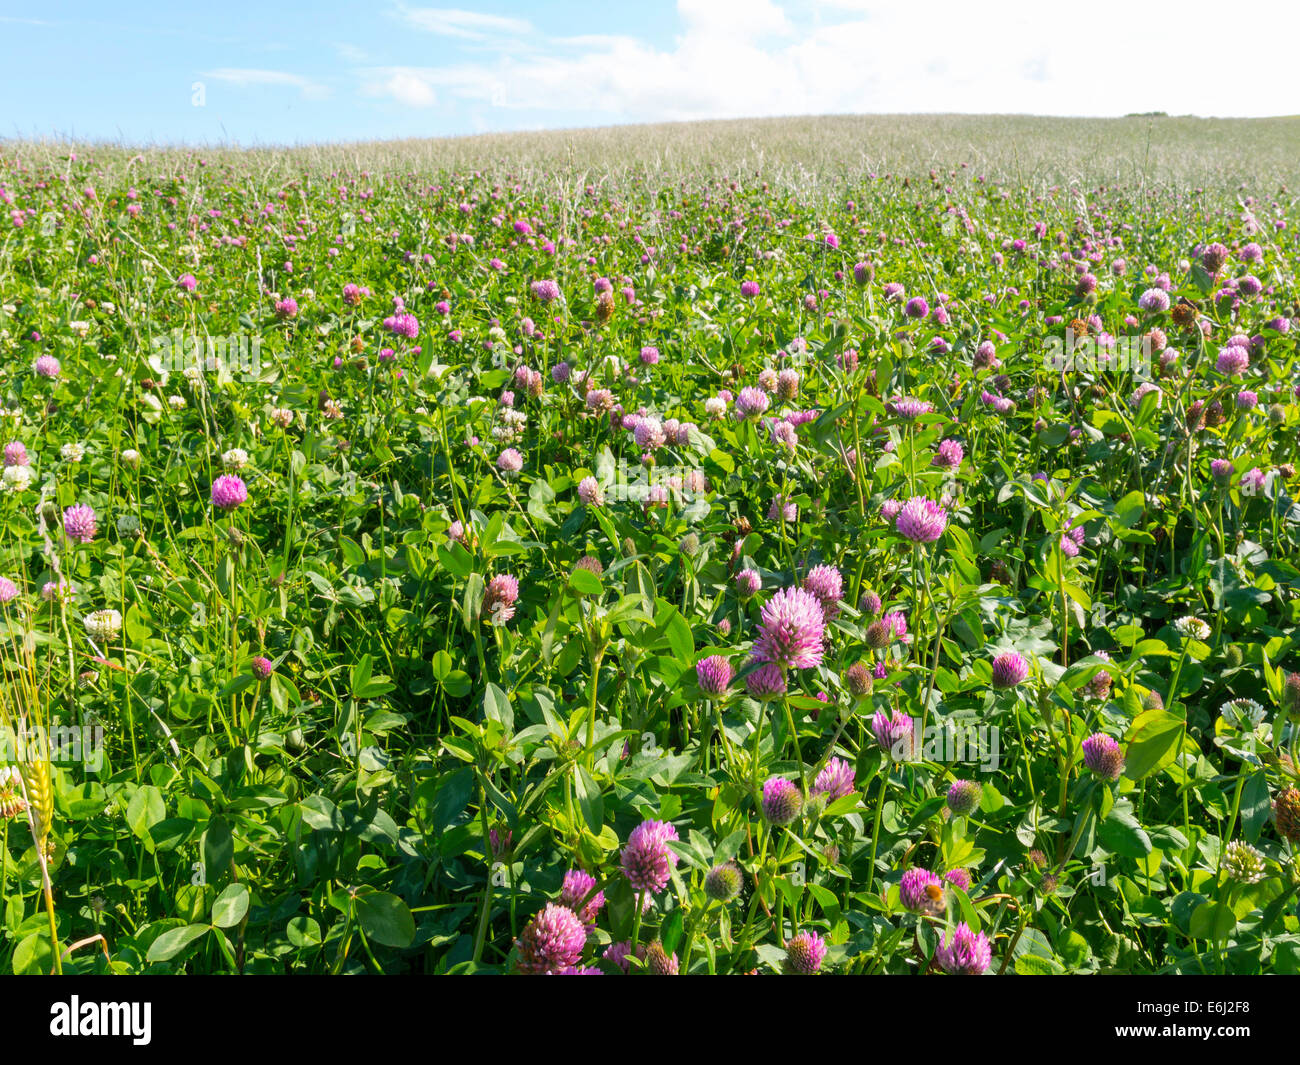 Field of Red Clover sustainable crop for animal feed or silage North Yorkshire - Stock Image